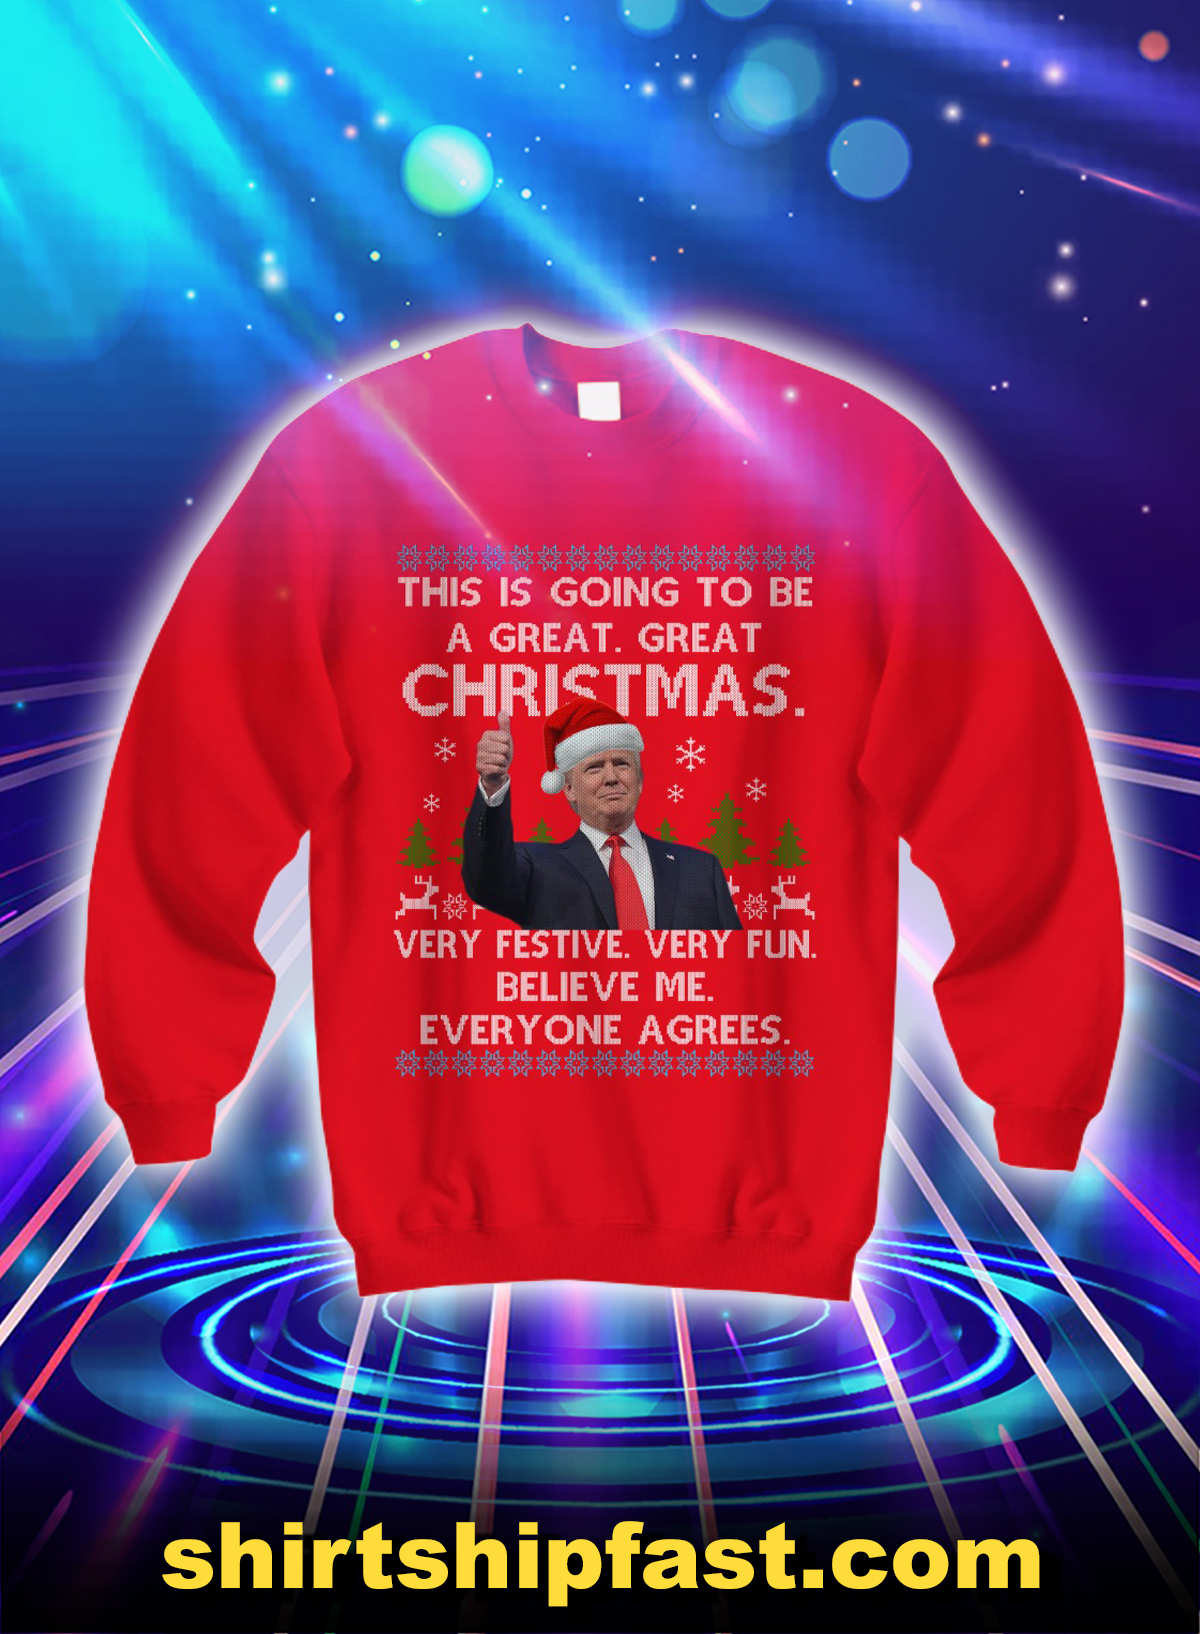 Trump this is going to be a great great christmas sweatshirt - Red